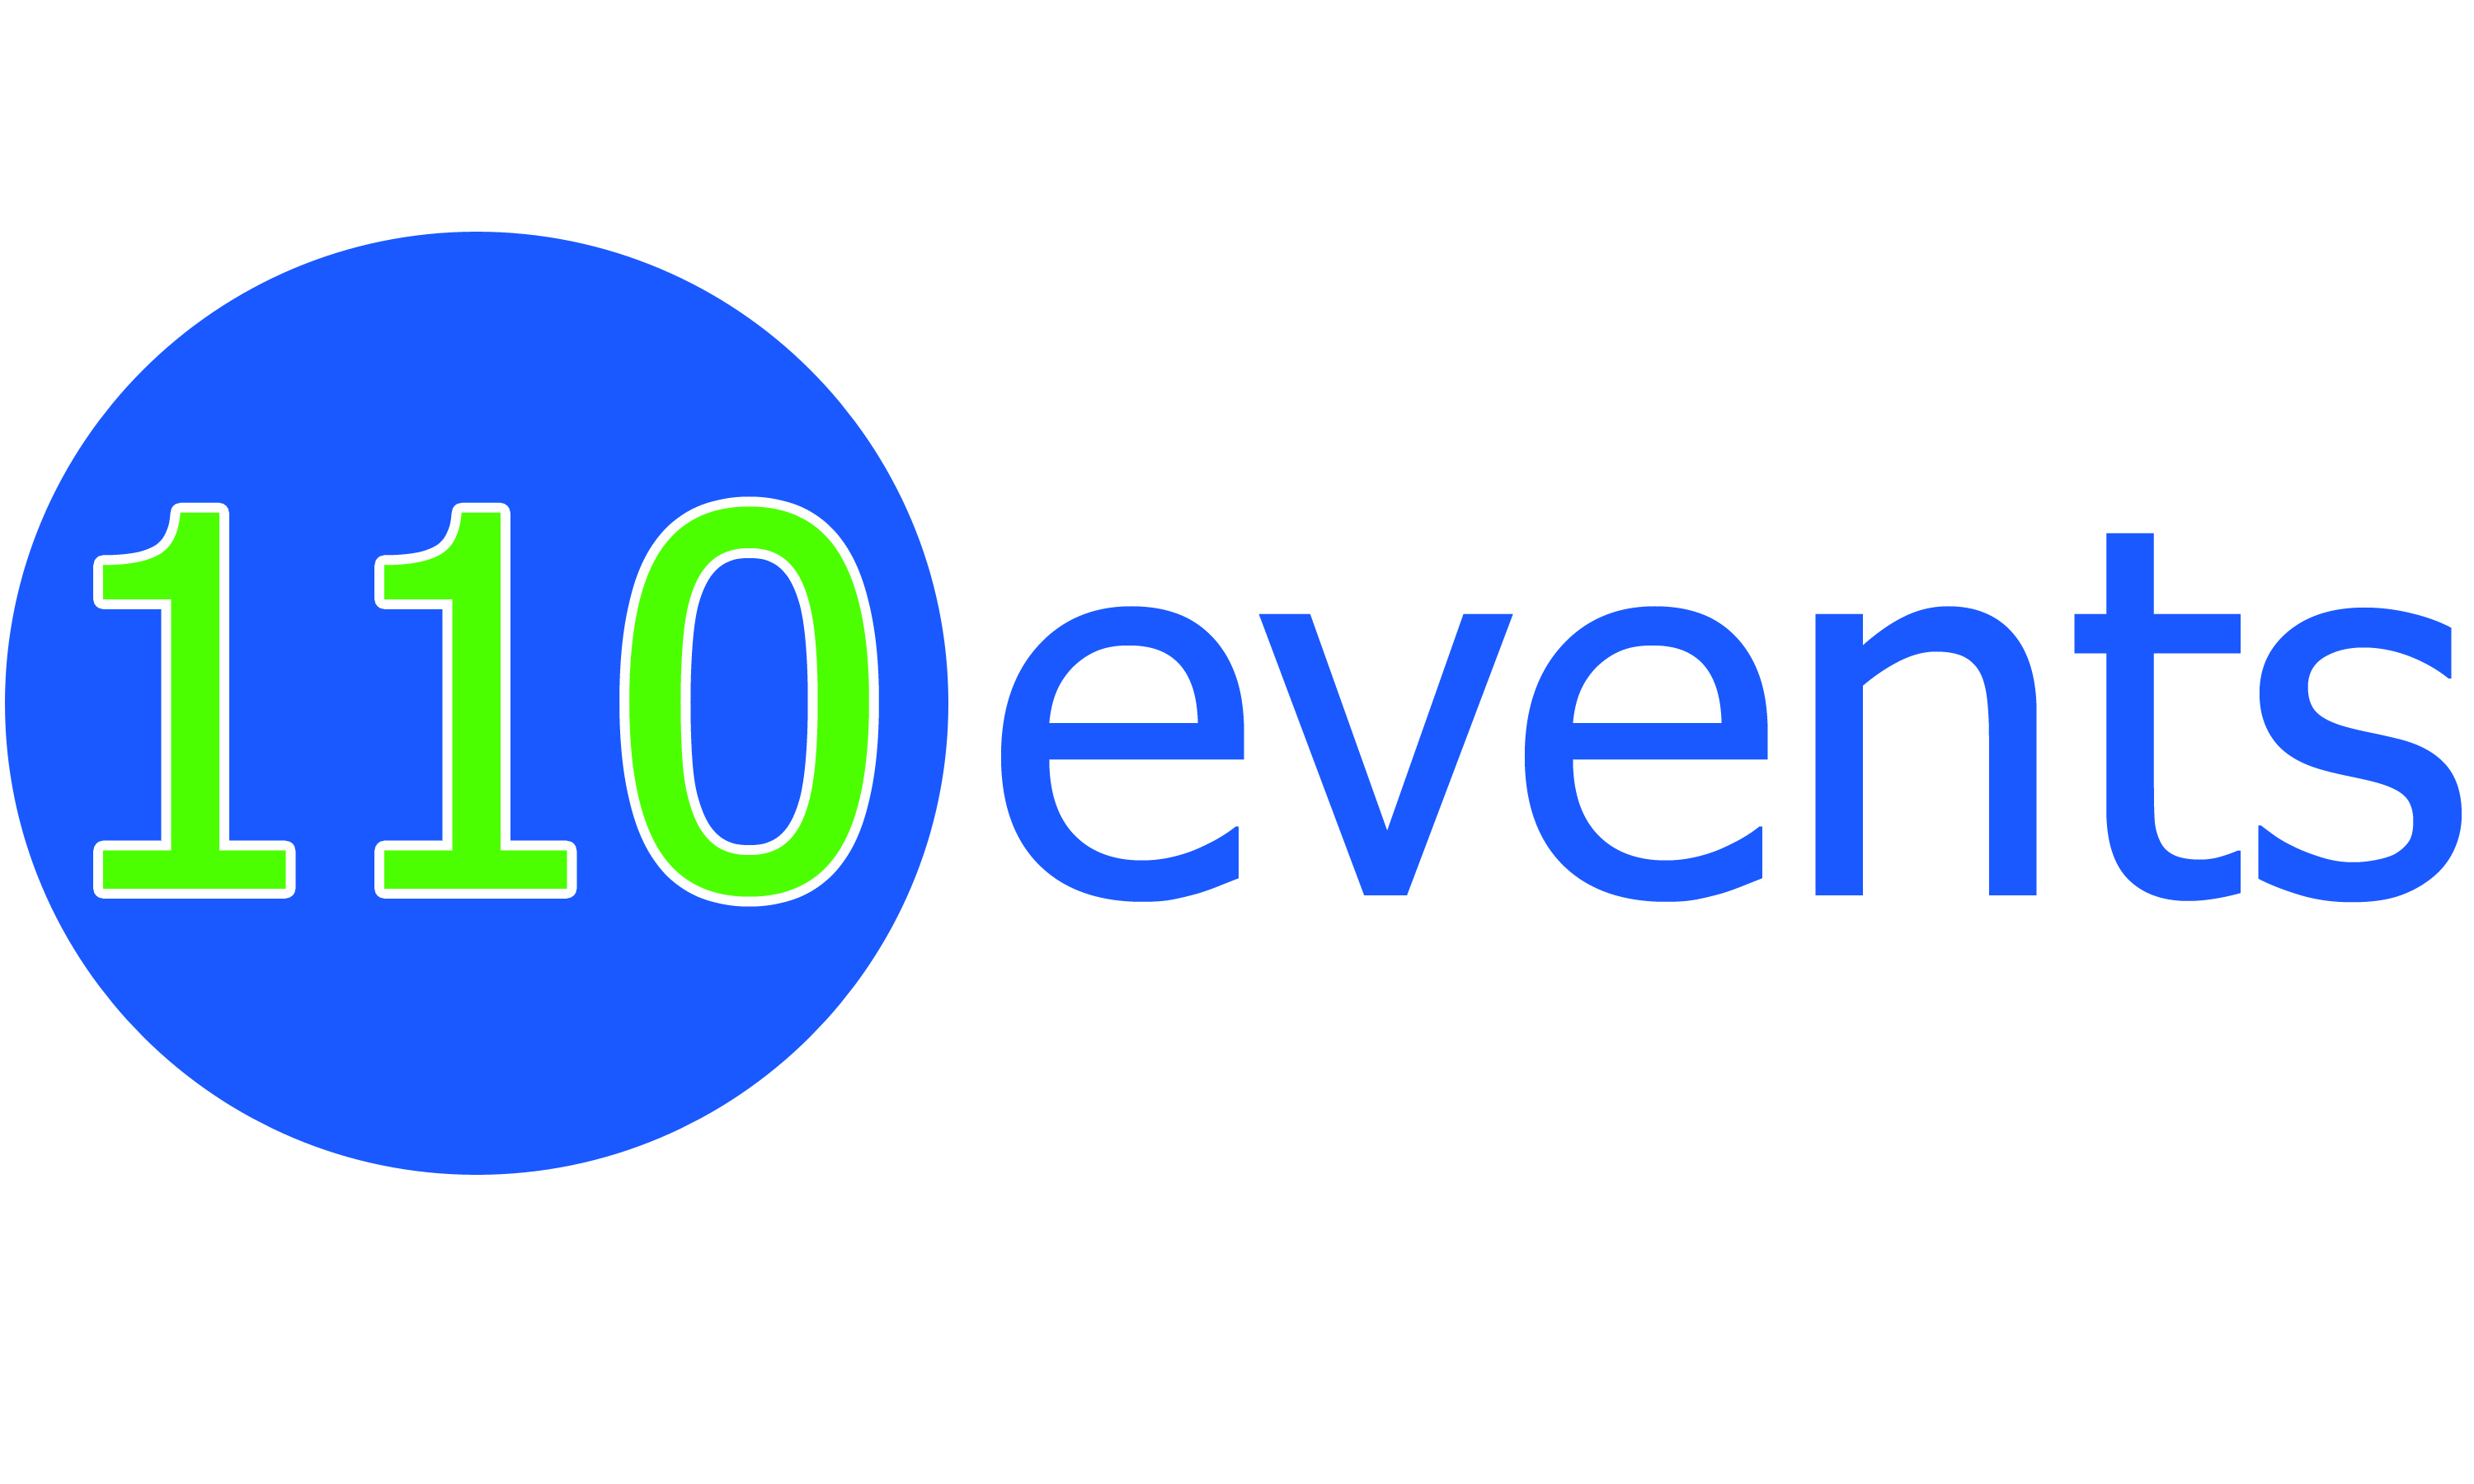 110 events sign (2)